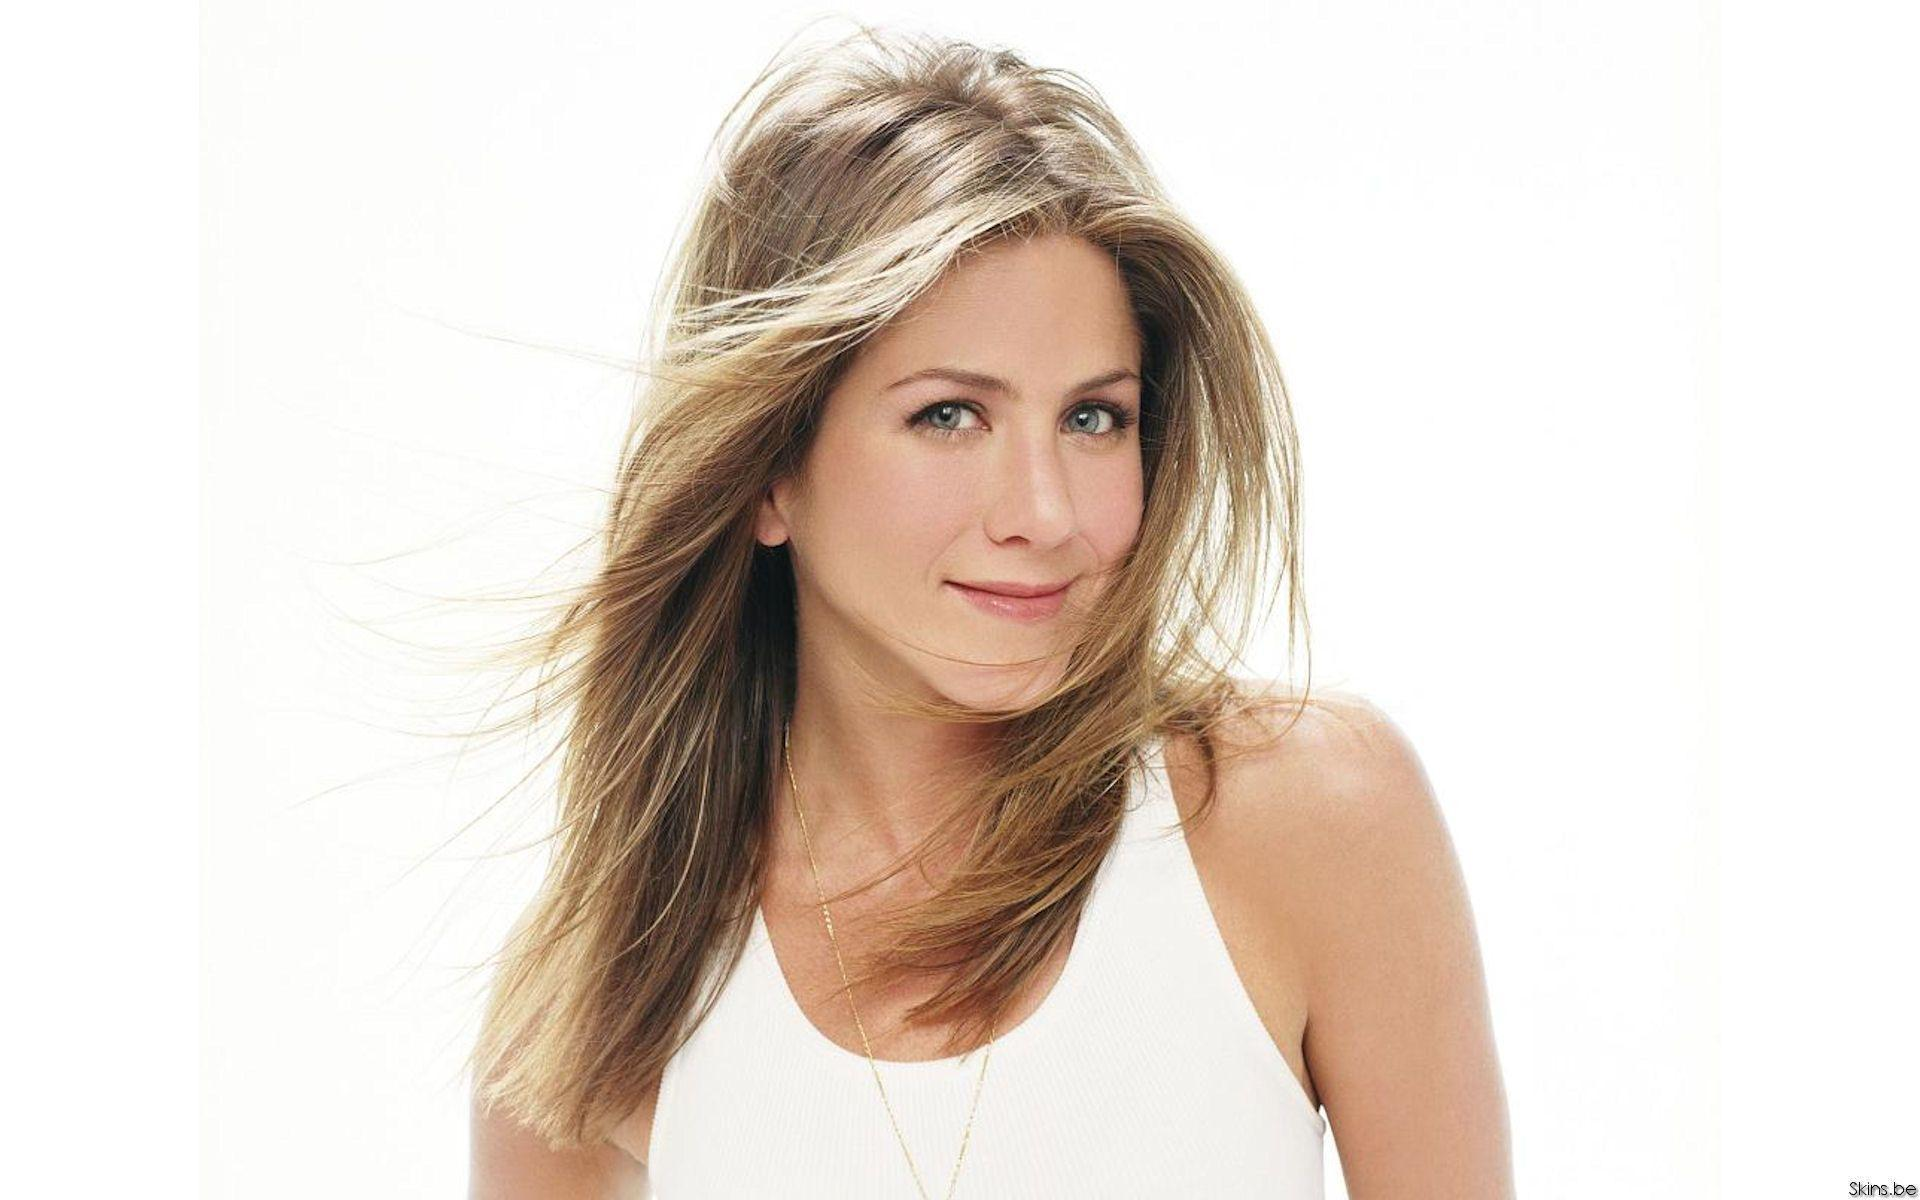 Jennifer Aniston HD Wallpapers - BackgroundHDWallpapers